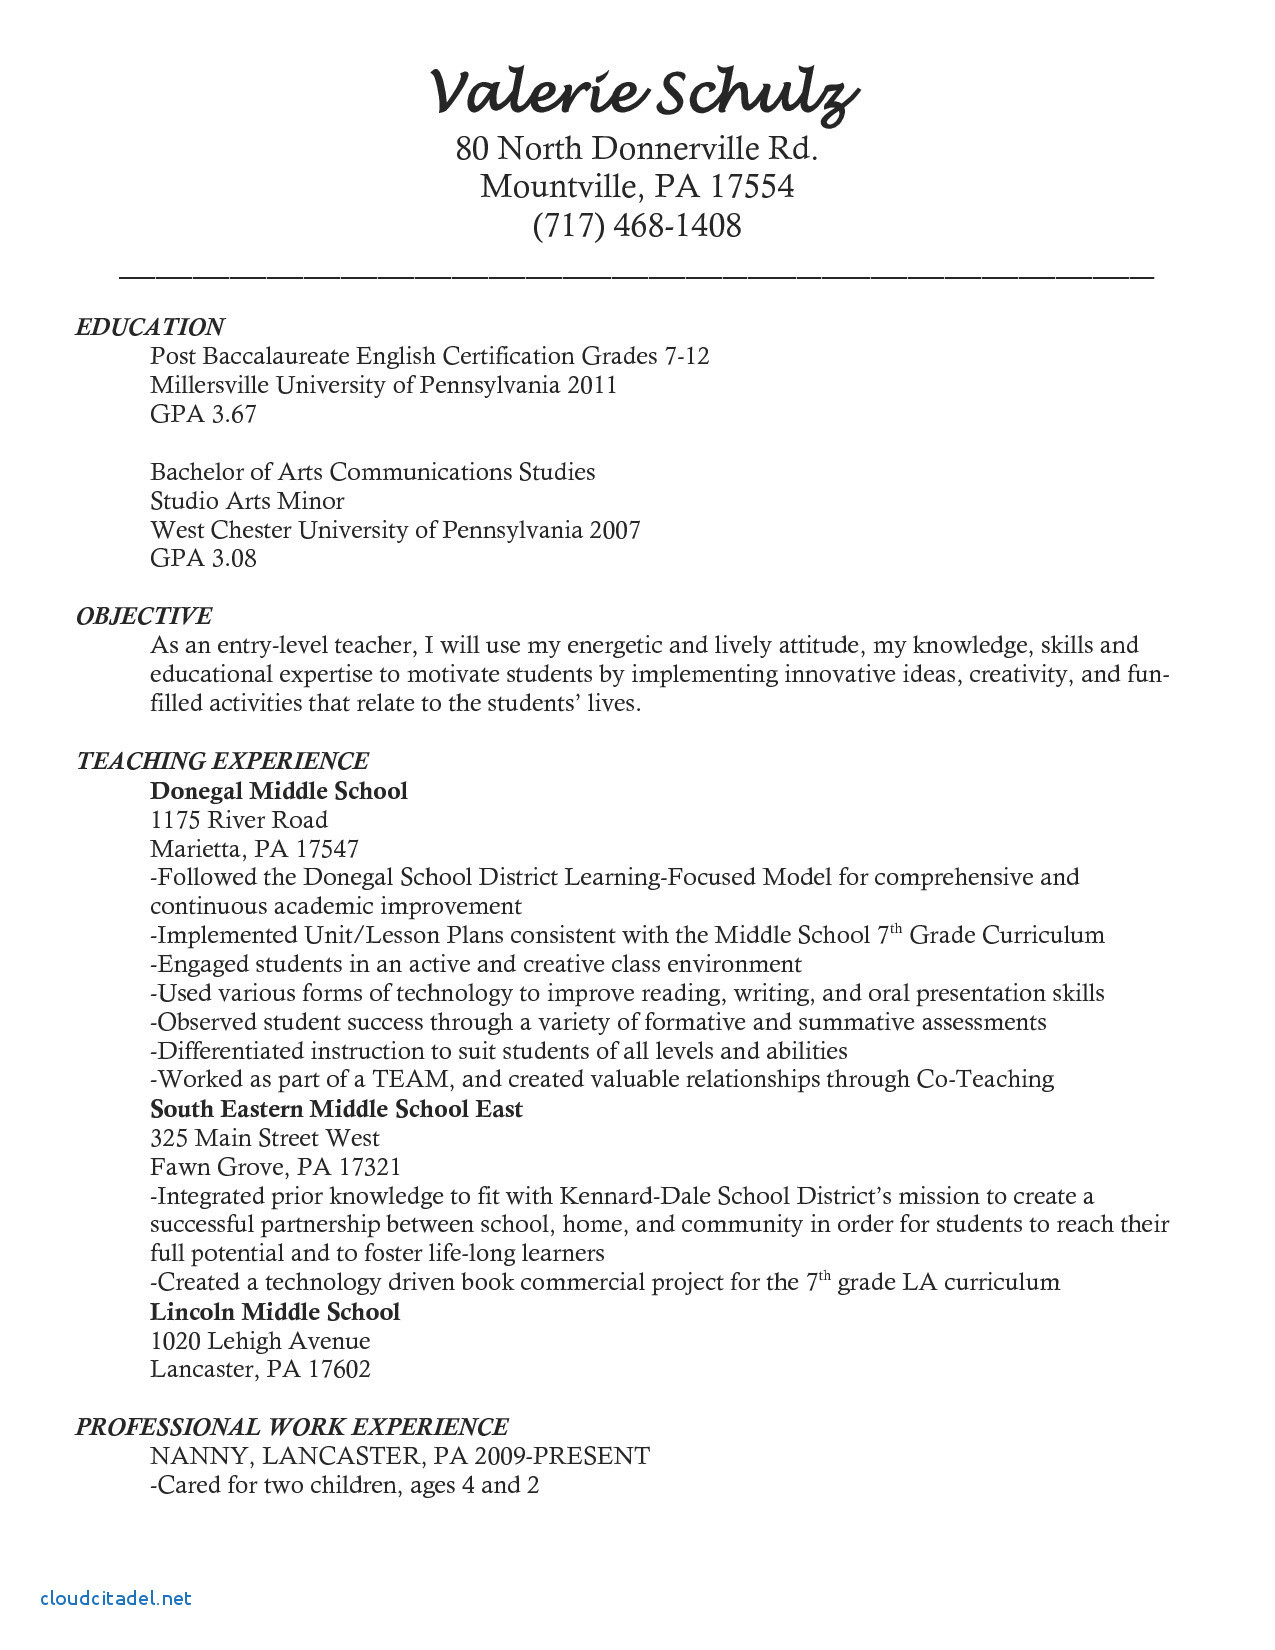 Art Teacher Resume Template - English Cv Template Luxury Inspirational Examples Resumes Ecologist